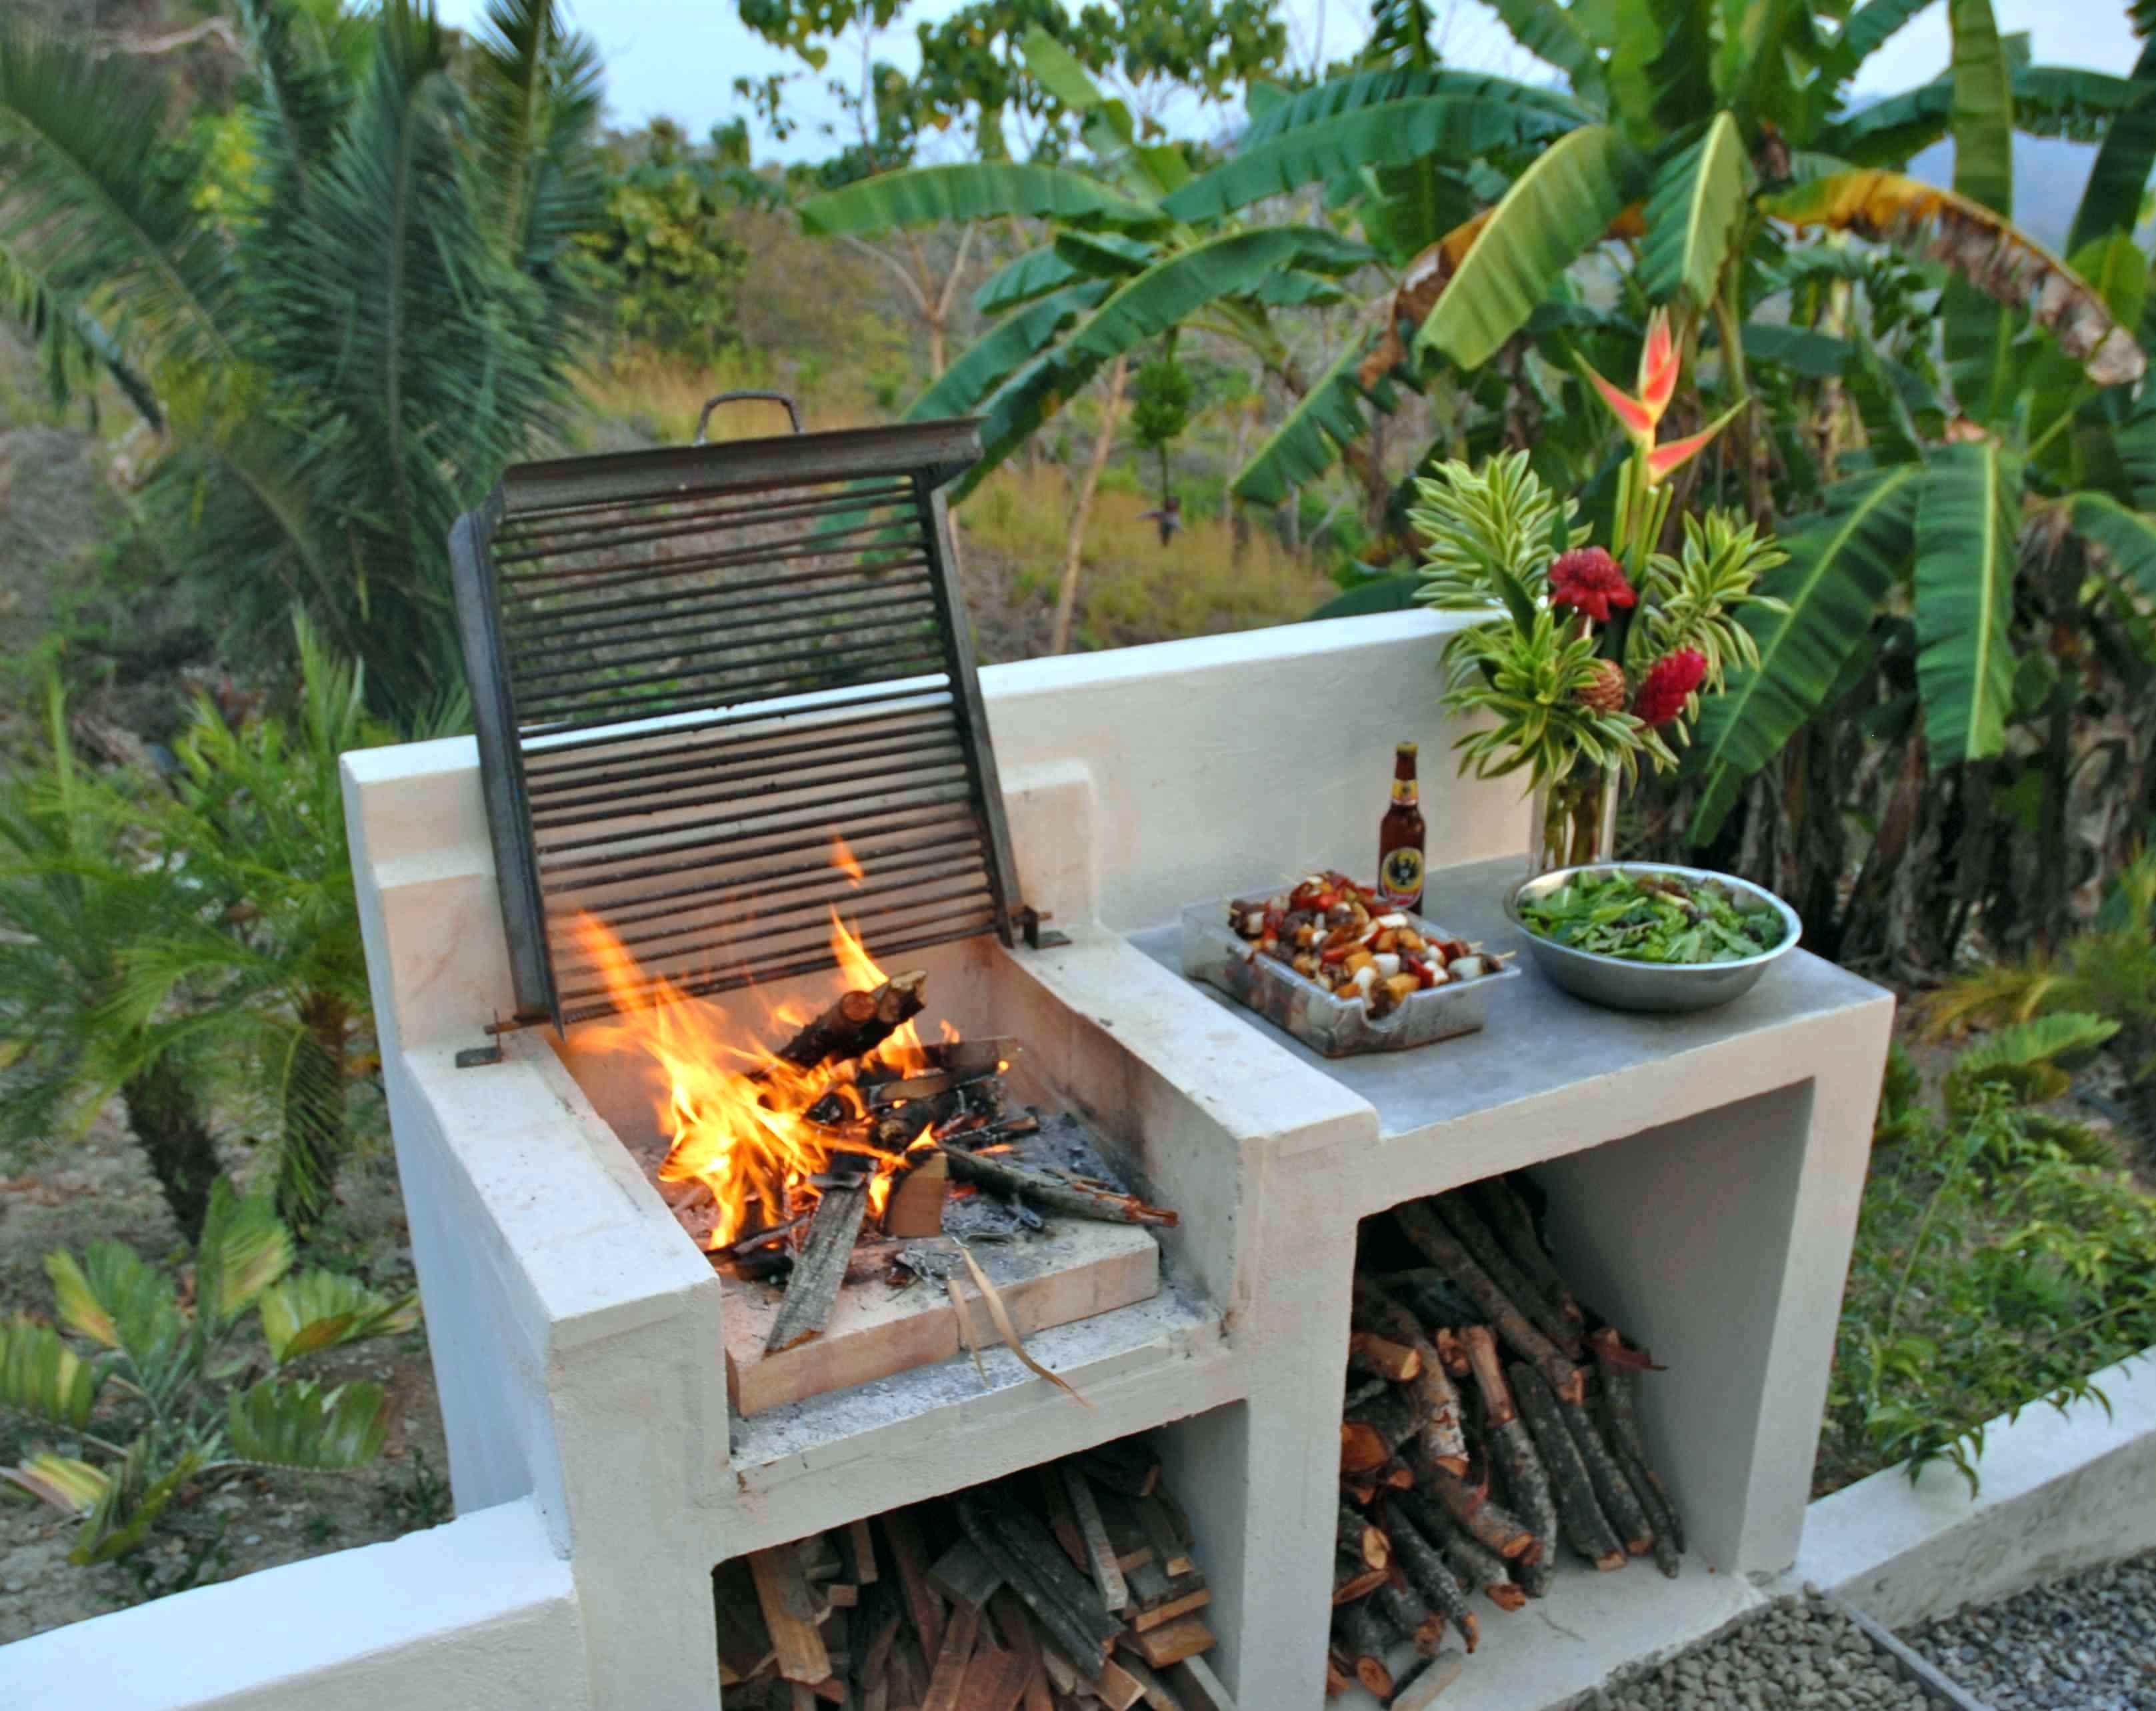 Outdoor Barbeque Designs Becue Uk Barbecue Design Ideas Grilling with Backyard Barbecue Design Ideas